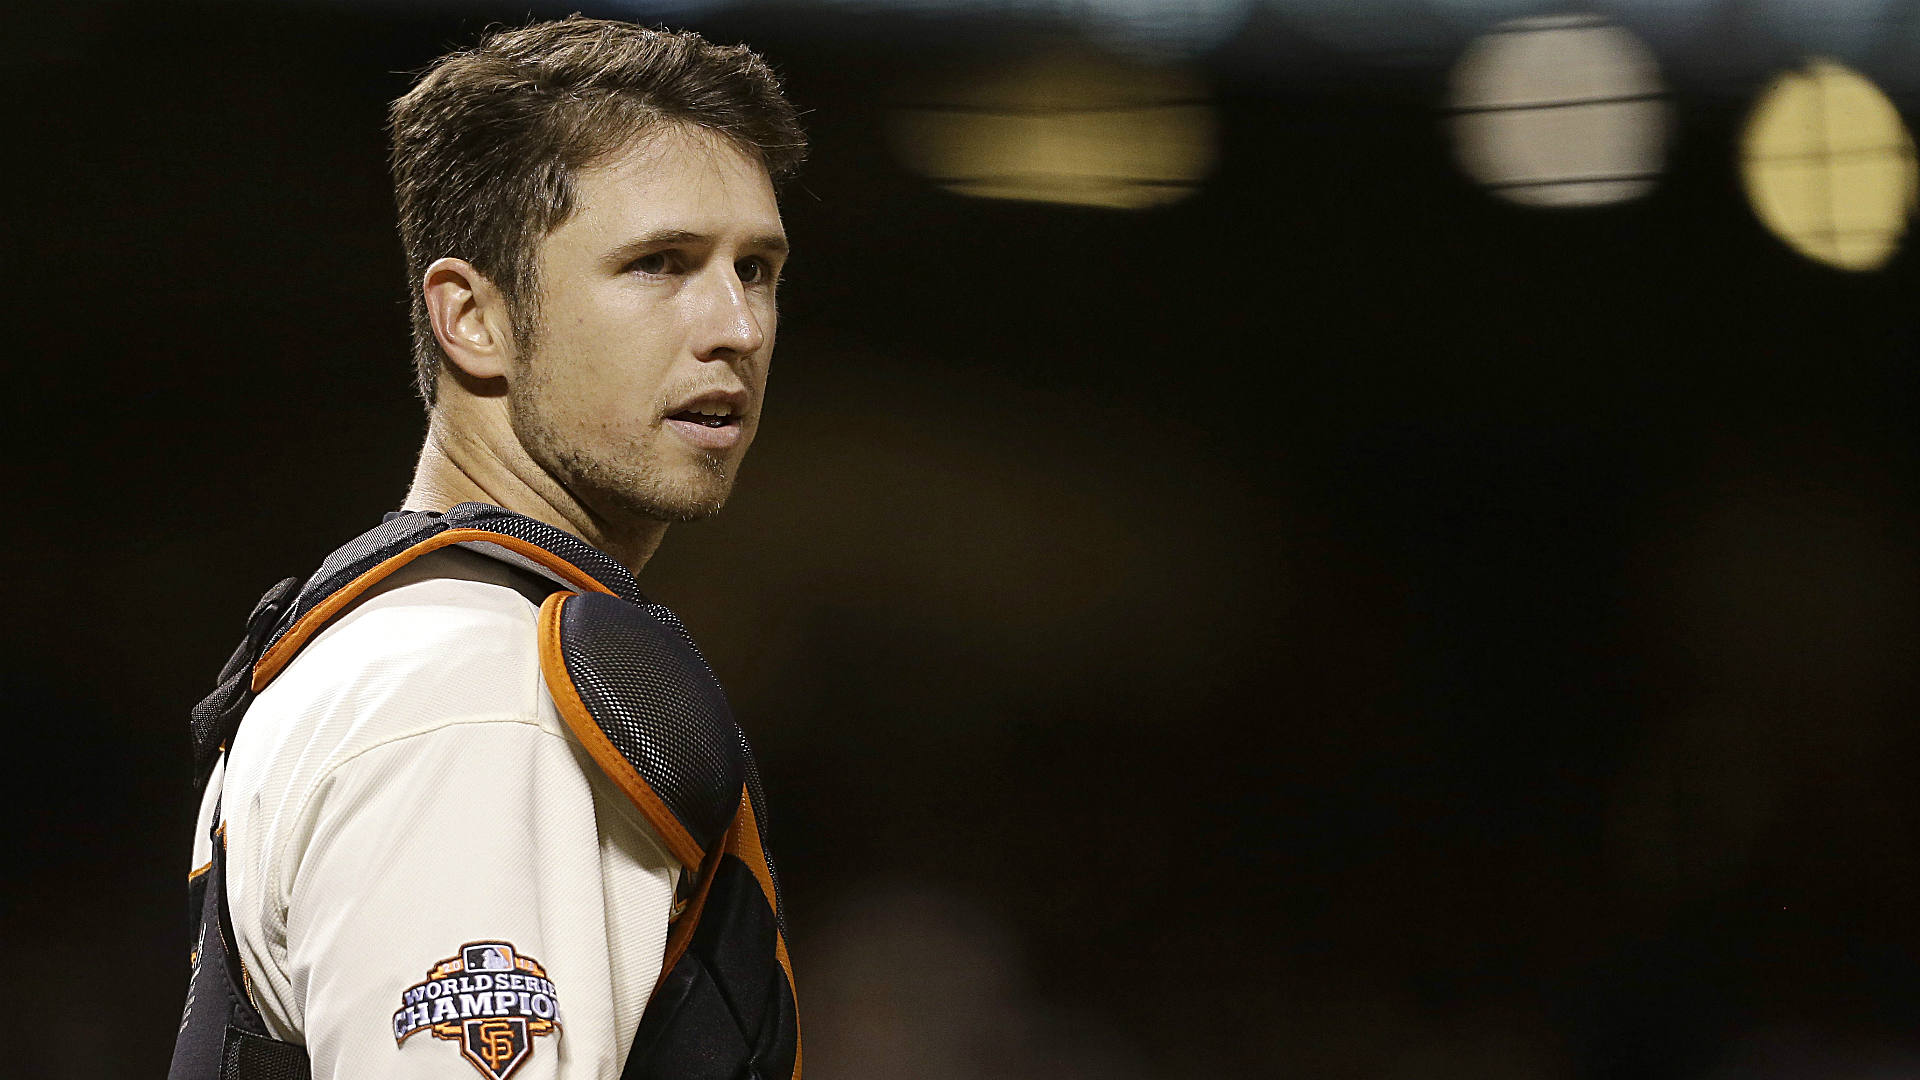 Fantasy baseball team report: San Francisco Giants